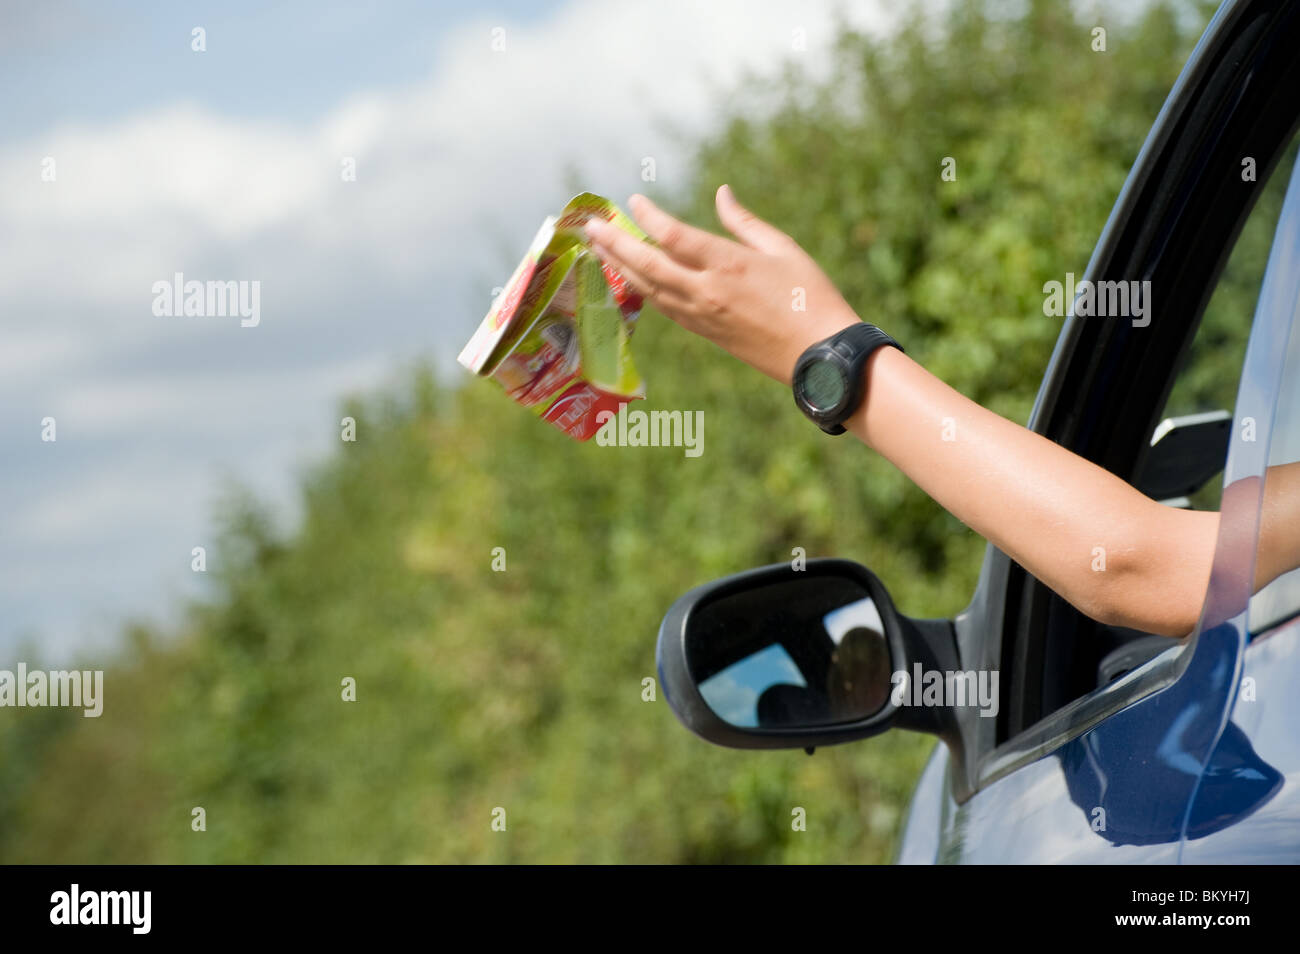 Somebody throwing litter out of a car window. - Stock Image